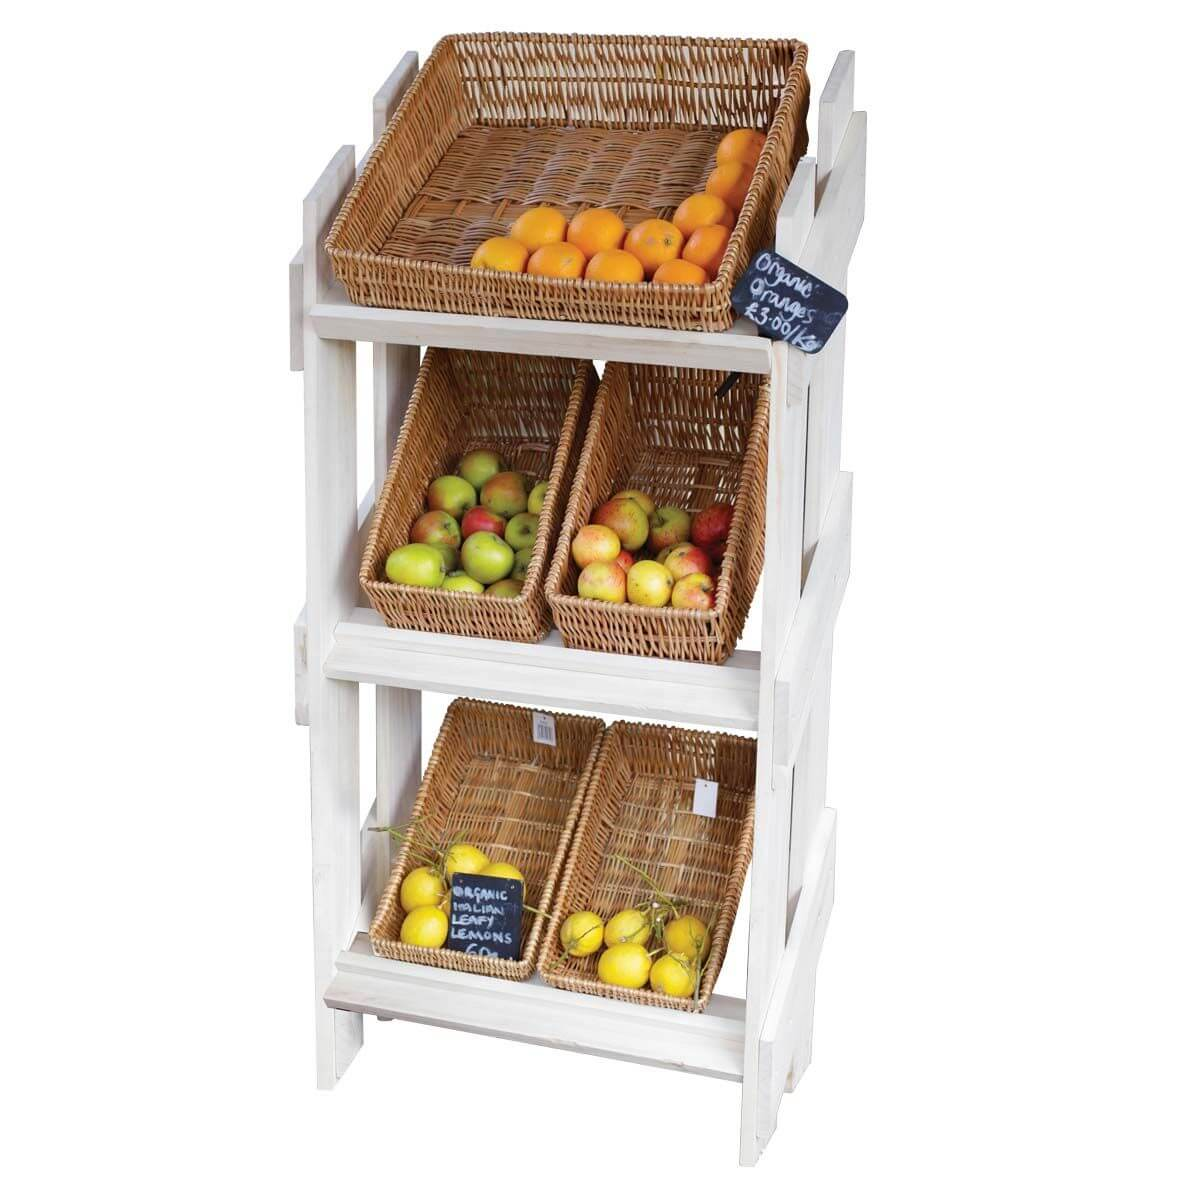 content/marketplace/fruit-snack-display-wooden-stand-with-6-wicker-trays_1.jpg